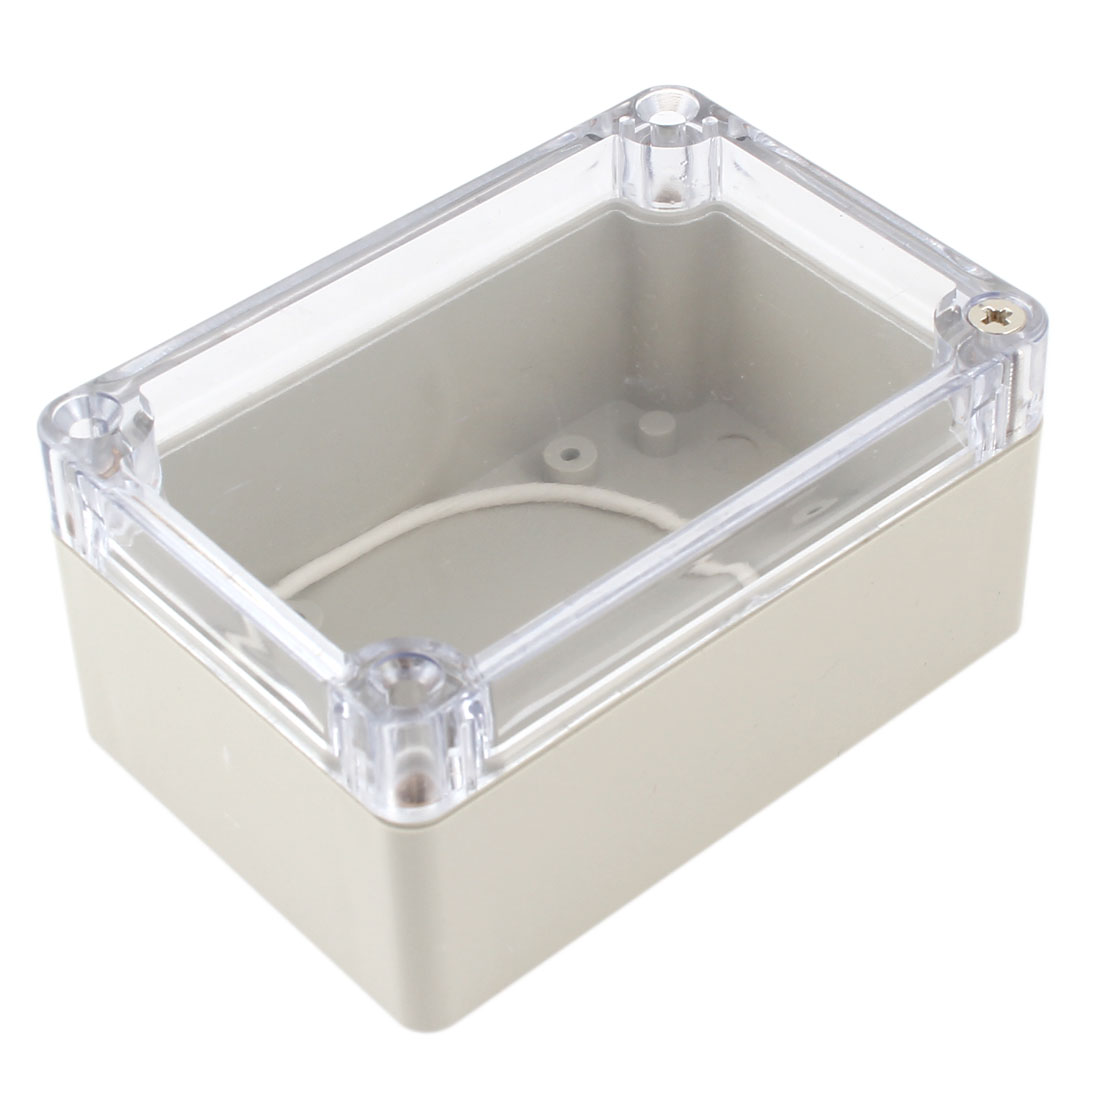 100mm x 68mm x 50mm Waterproof Plastic Enclosure Case DIY Junction Box